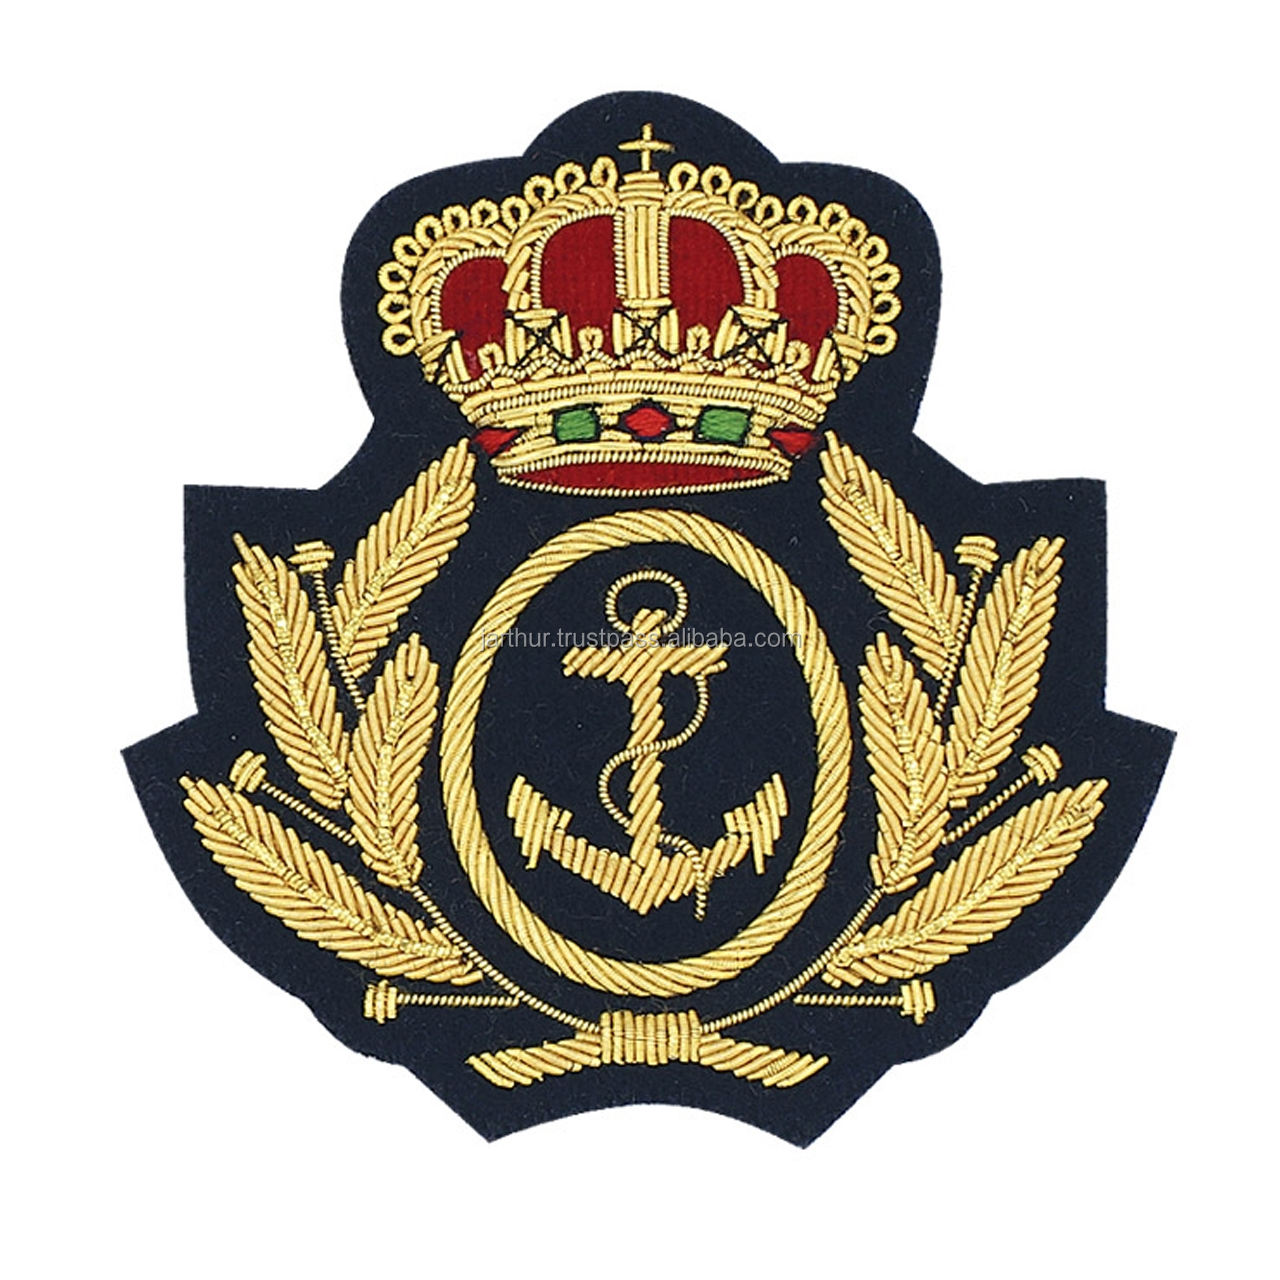 ROYAL NAVY ARMY BADGE WITH KINGS CROWN Hand embroidery badge /Navy Gold bullion badge